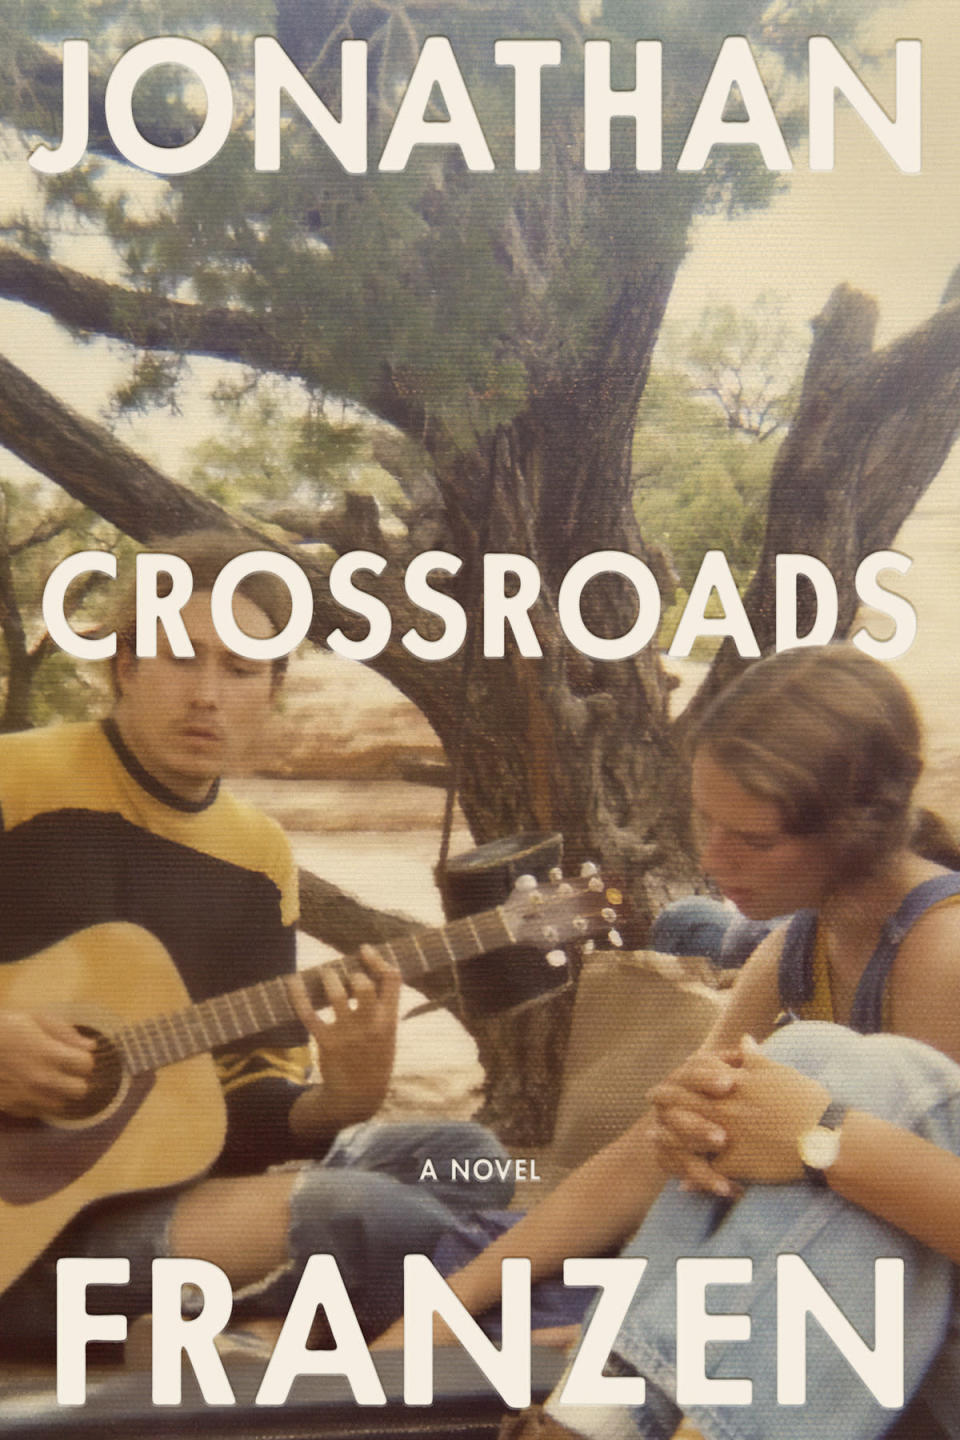 """This cover image released by Farrar, Straus and Giroux shows """"Crossroads,"""" a novel by Jonathan Franzen releasing on Oct. 5. (Farrar, Straus and Giroux via AP)"""